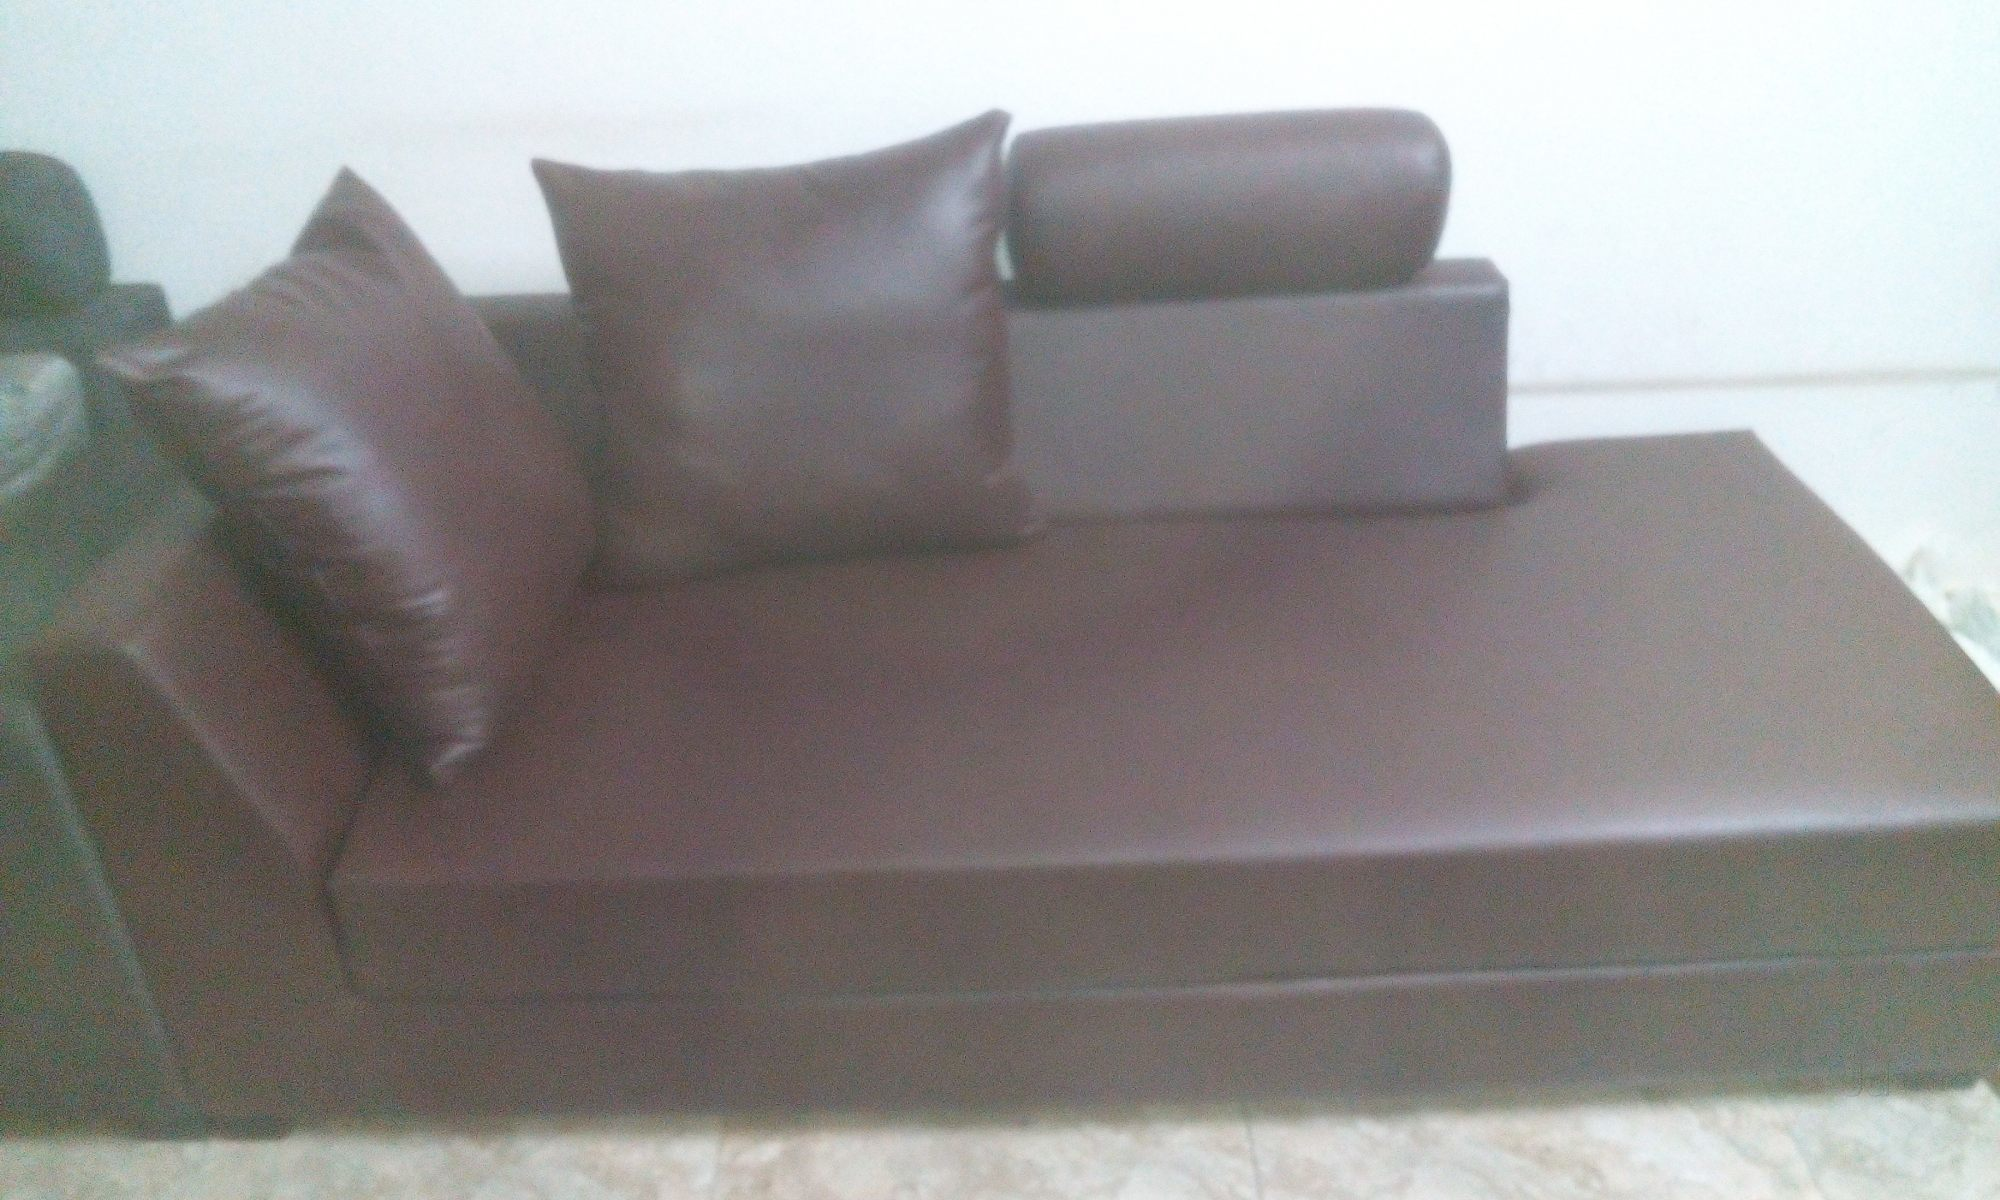 sofa repair sikanderpur gurgaon what does it cost to reupholster a service in repairing services